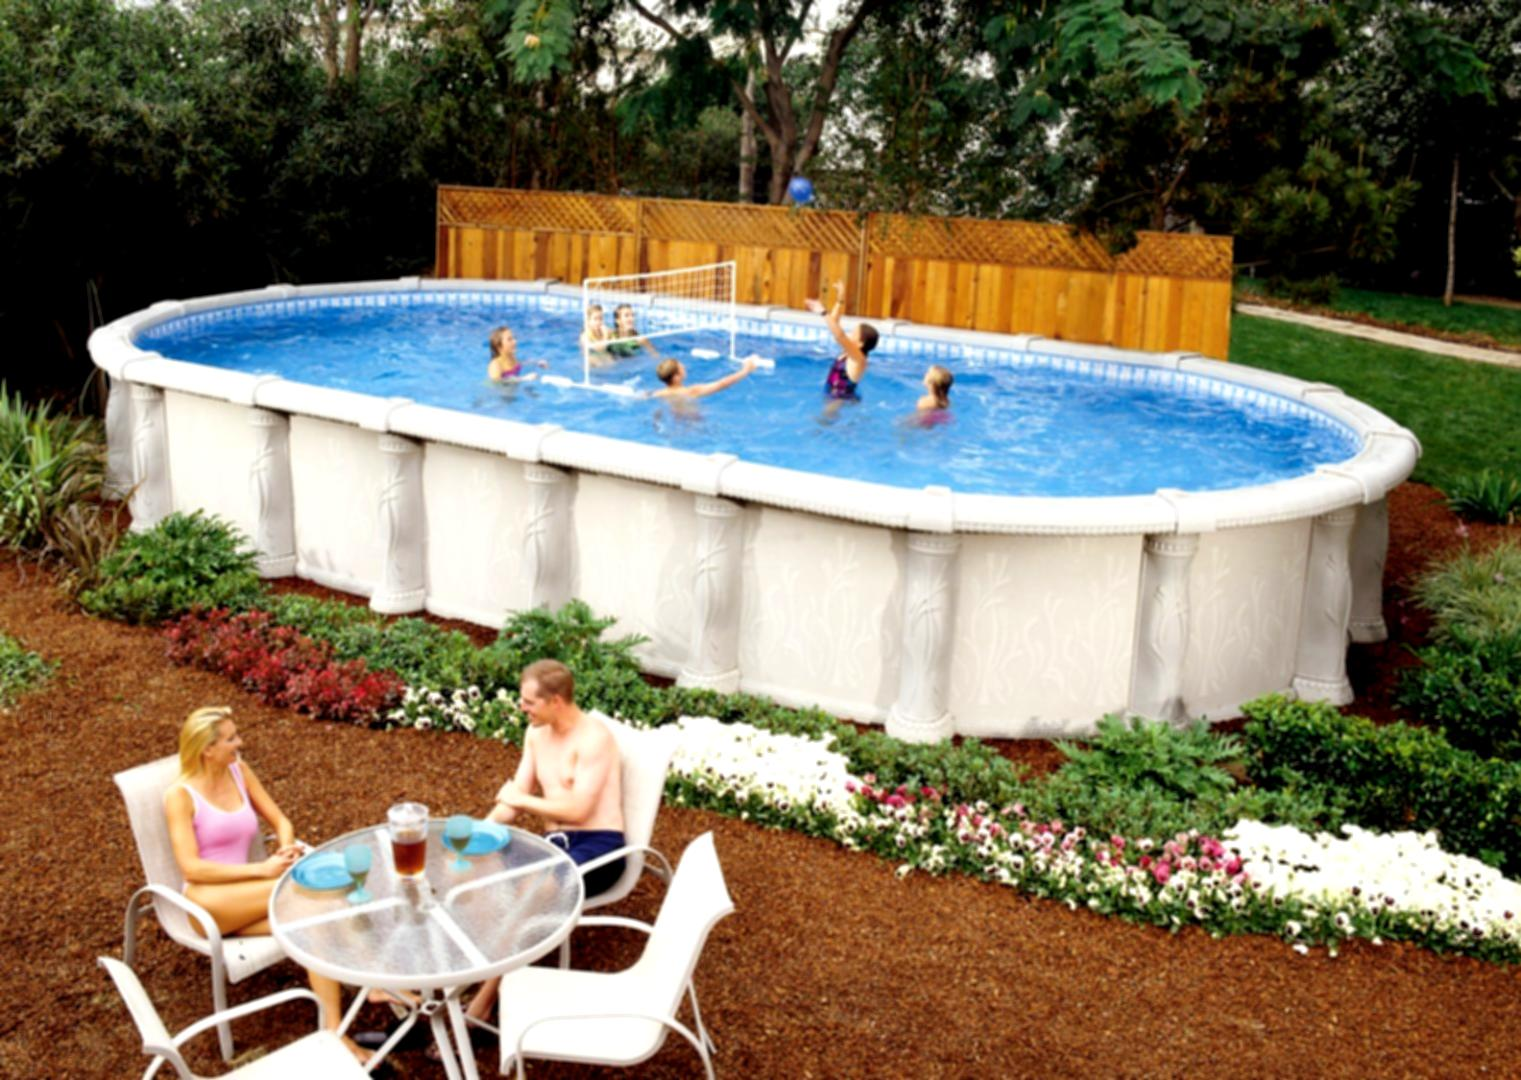 Above ground swimming pool installation companies for Swimming pool installation companies